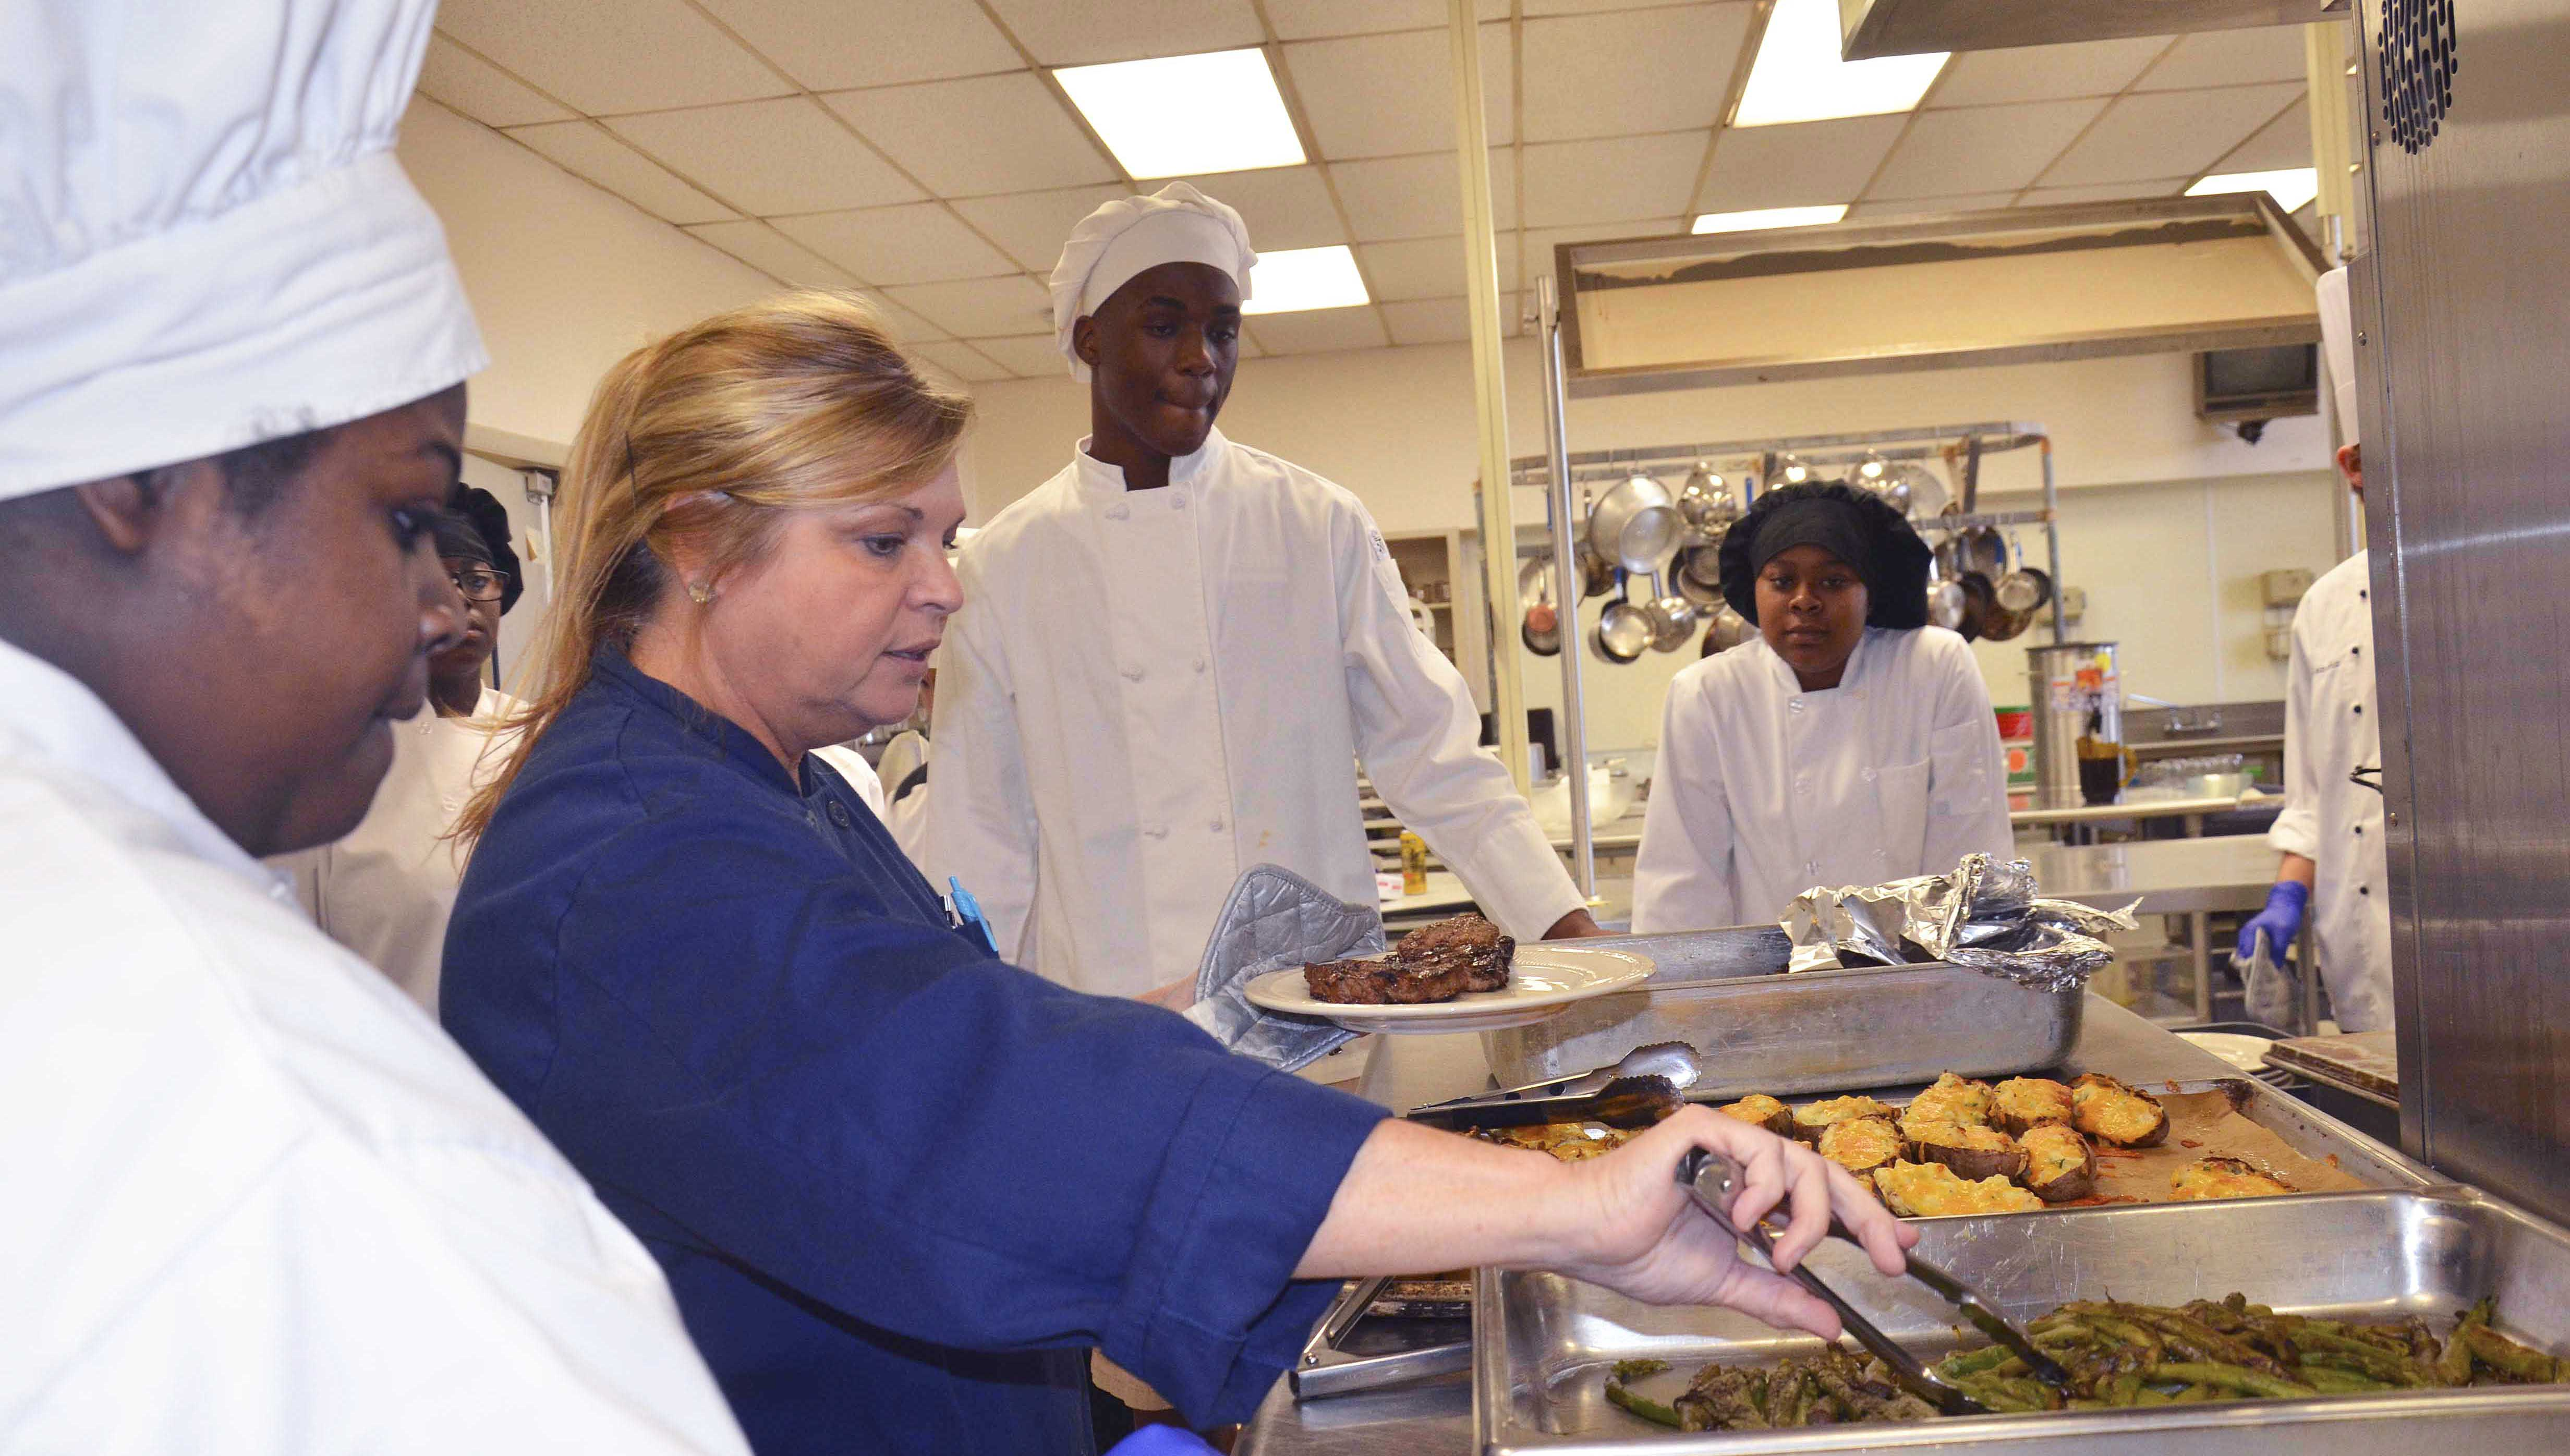 Students at the Culinary Arts Academy prepared lunch for members of the Troy City Board of Education and the Troy City Council Wednesday at the Academy building. The students also prepared homemade dressing, rolls and New York-style cheesecake. Inset: Members of the Troy City Council, Wanda Moultry, Stephanie Baker, Greg Meeks and Marcus Paramore enjoyed the lunch in their honor.